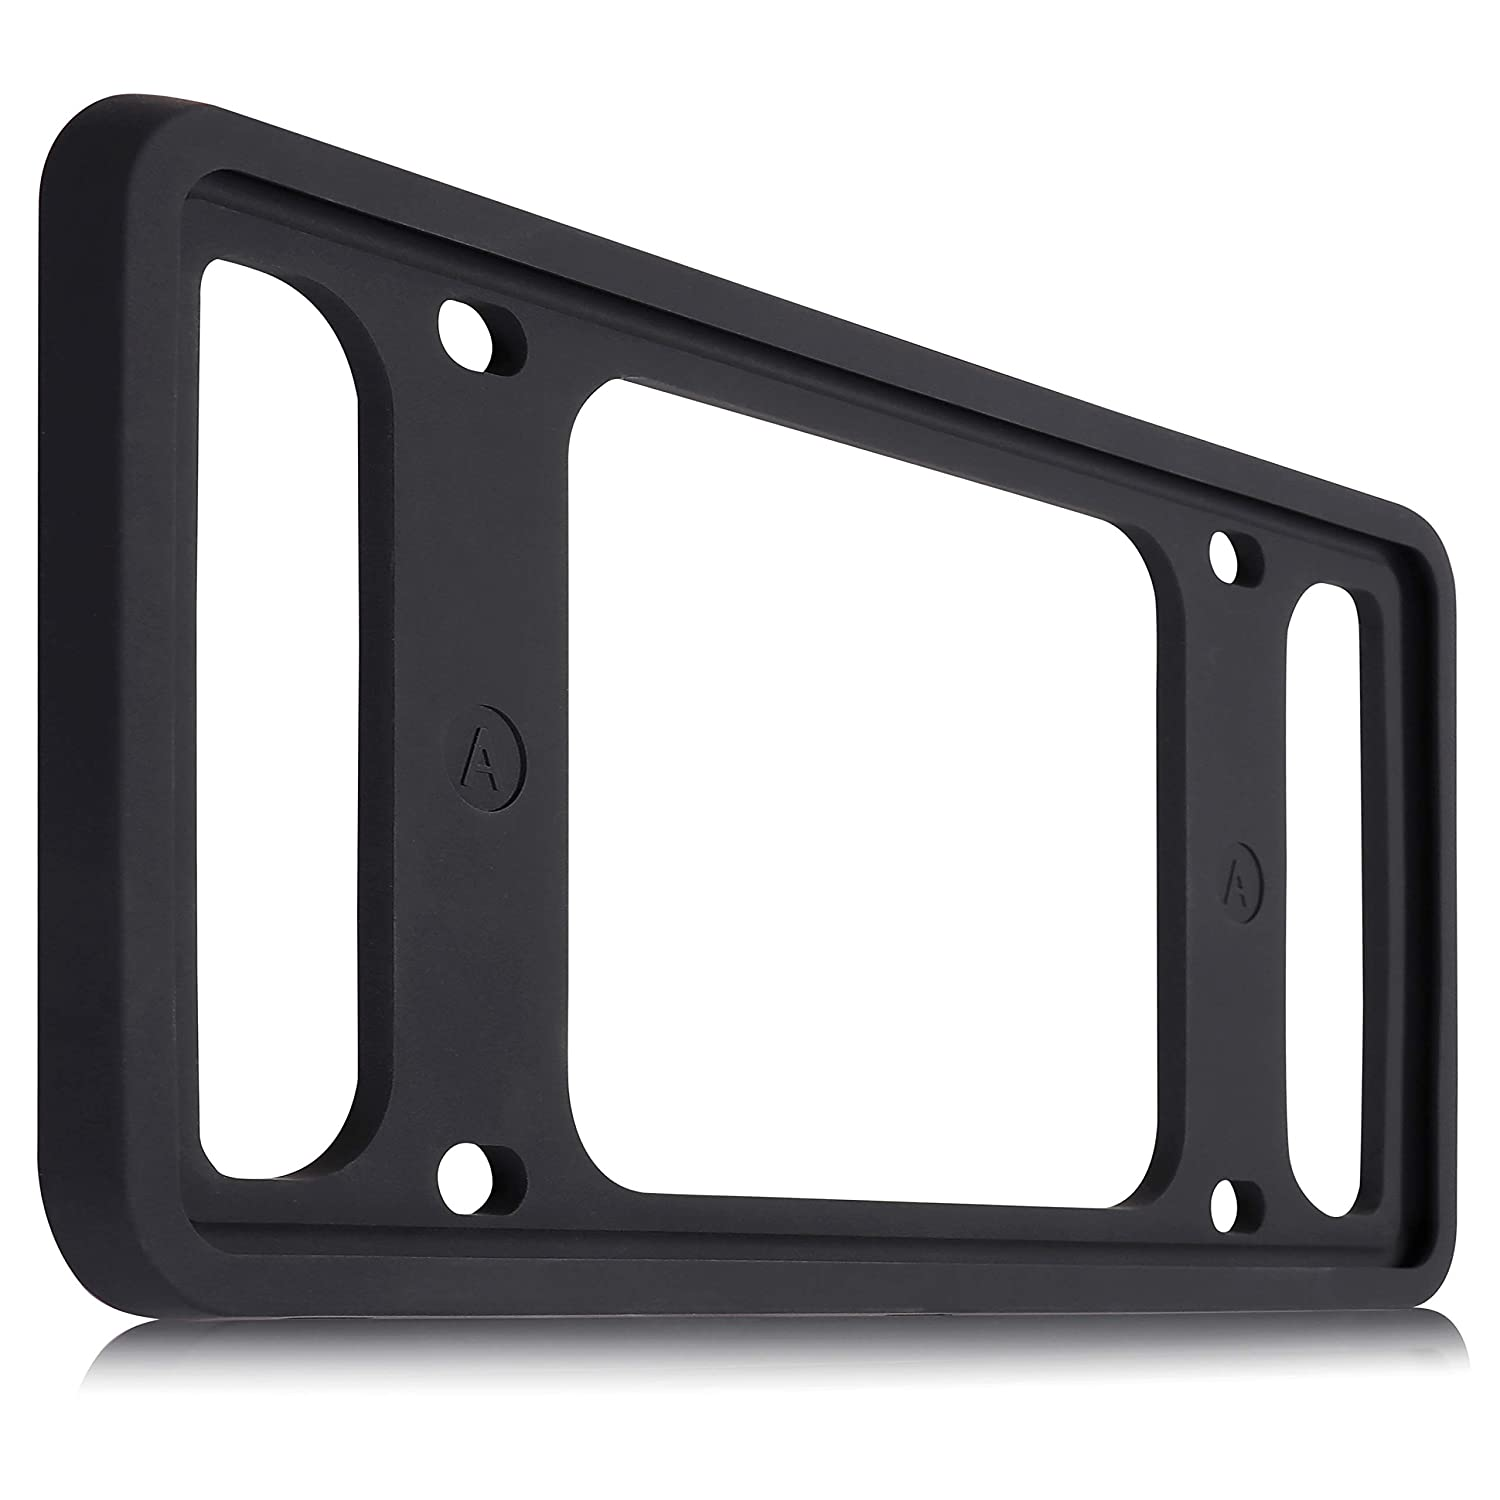 Silicone Frame Version License Plate Frame as License Plate Cover and License Plate Holder for US Vehicles License Plate Anhai License Plate Frame